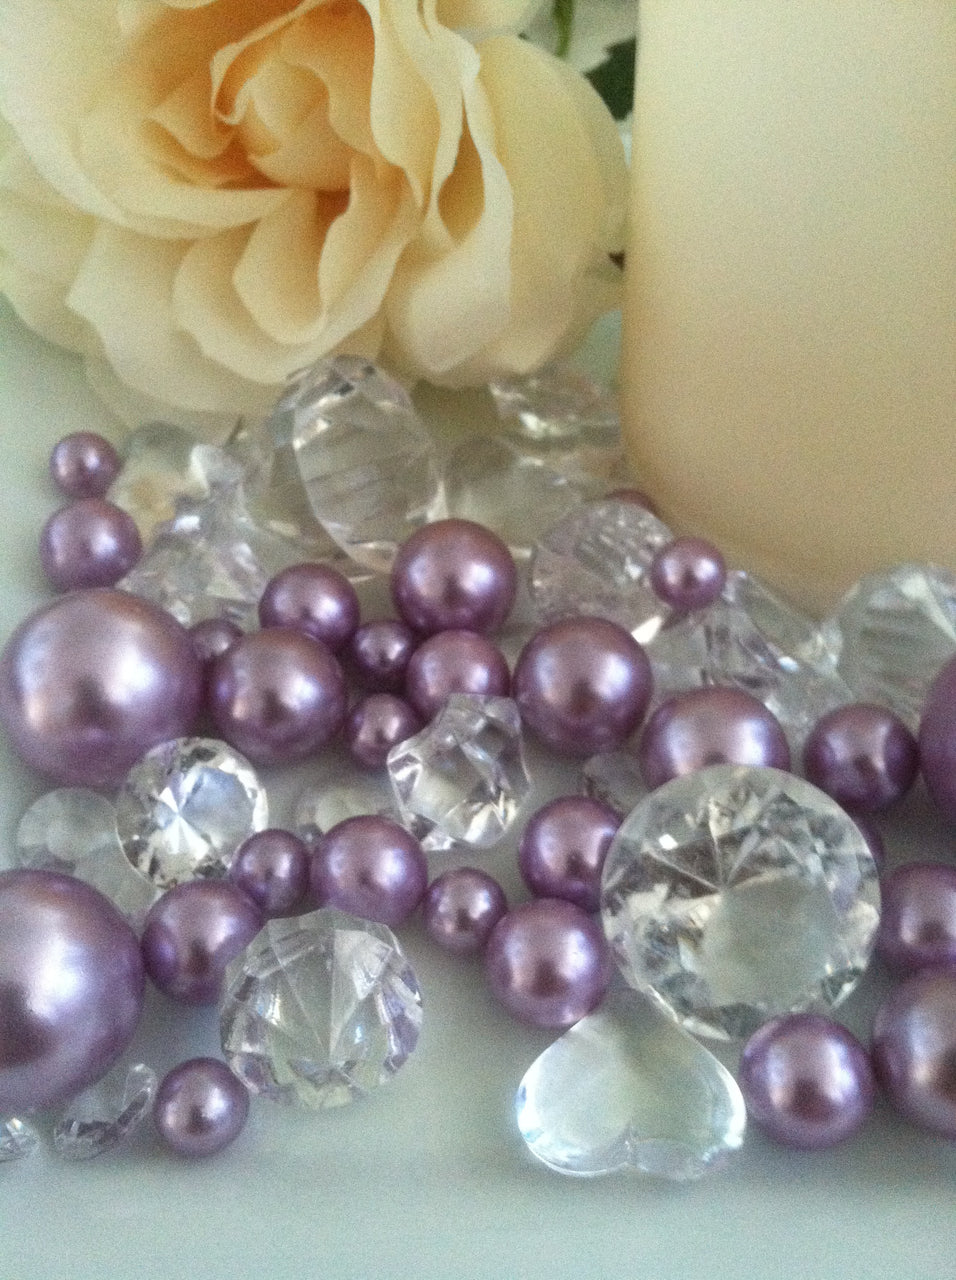 80 Lavendar Pearl & Clear Diamond Gems Table Scatter, Vase Filler Diamonds & Pearls